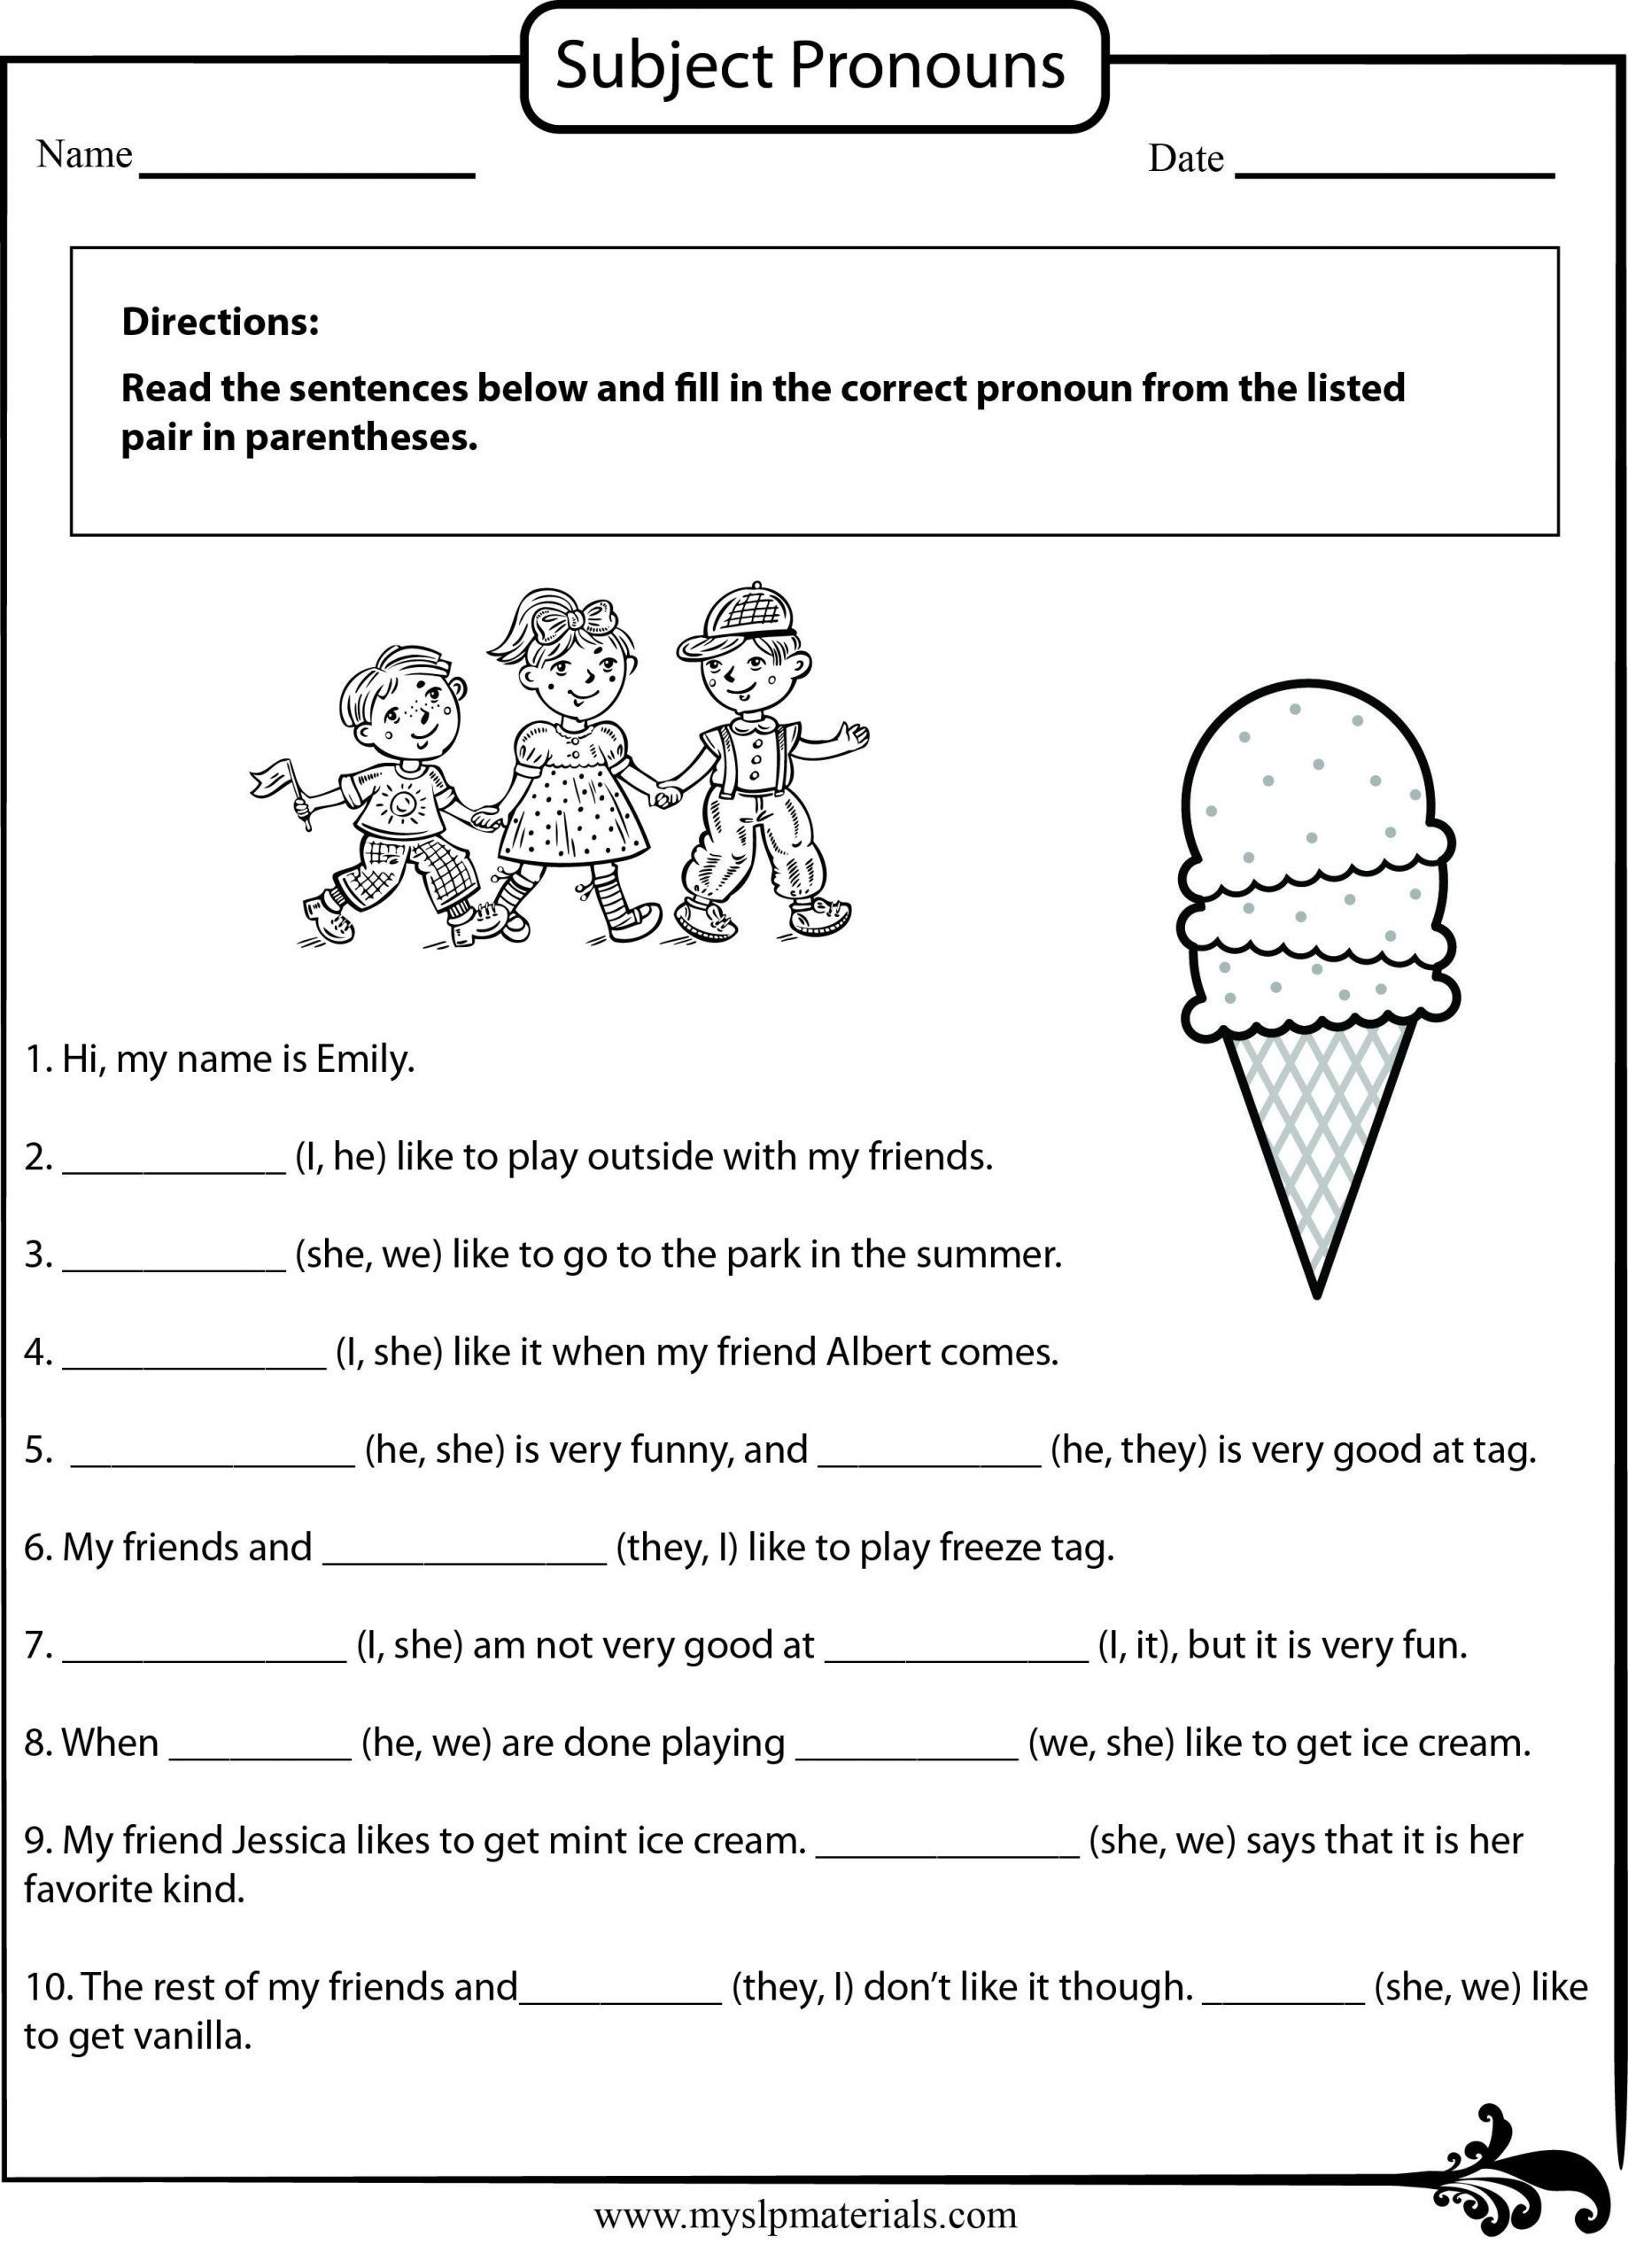 English Worksheet For Grade 2 Subject Pronoun Speech In